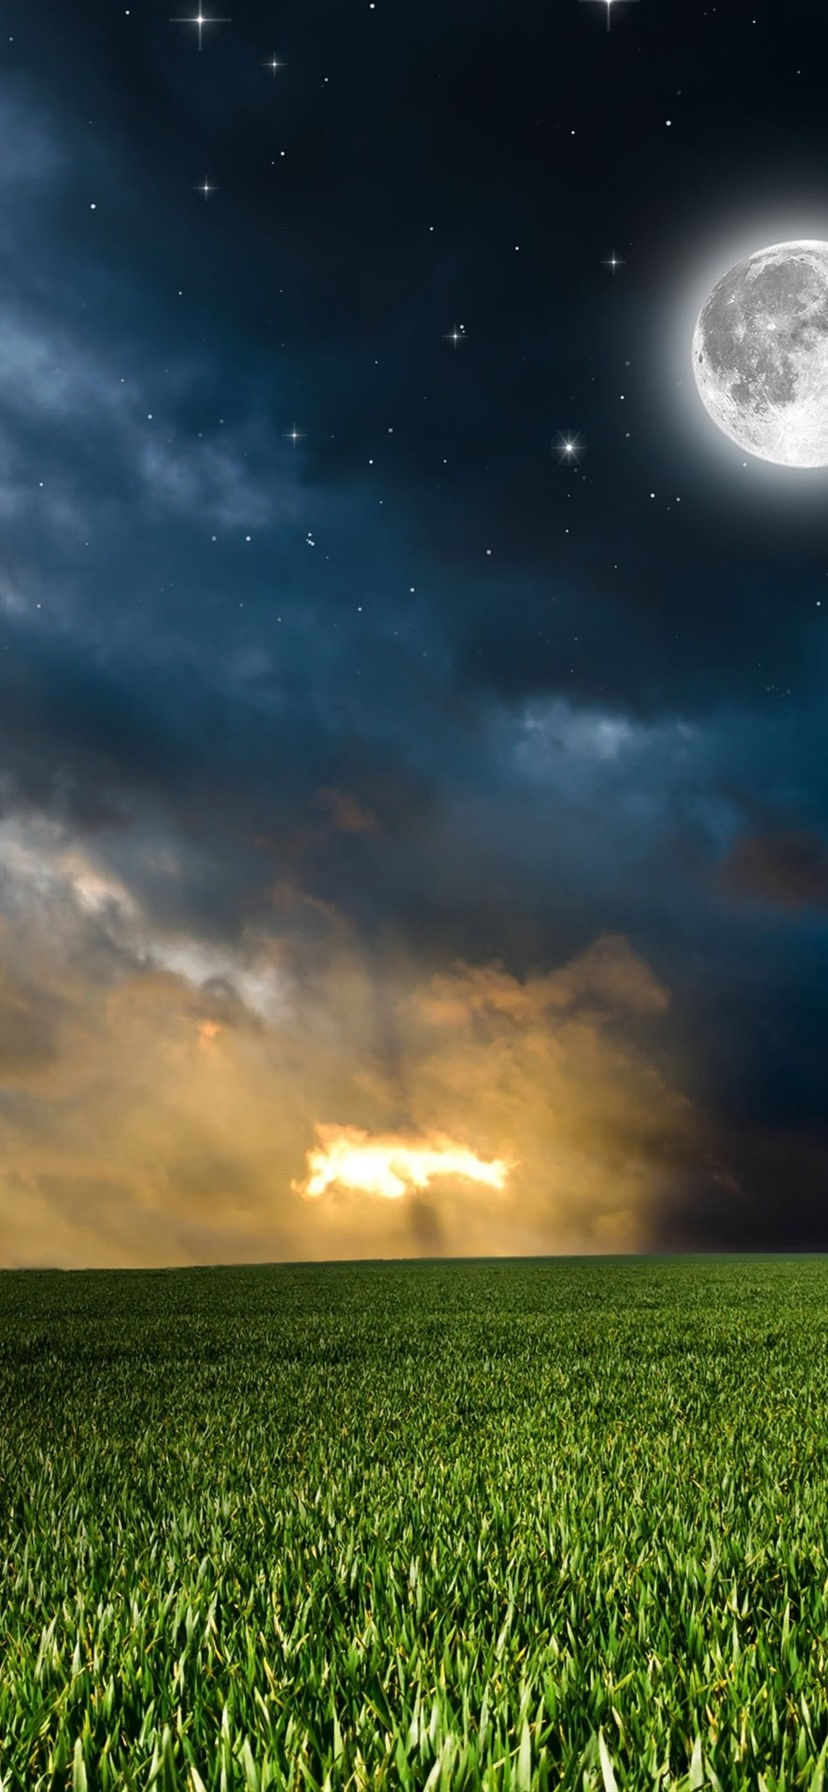 Wallpaper Nature, fields, clouds, moon, stars, night 3840x2160 UHD 4K Picture, Image